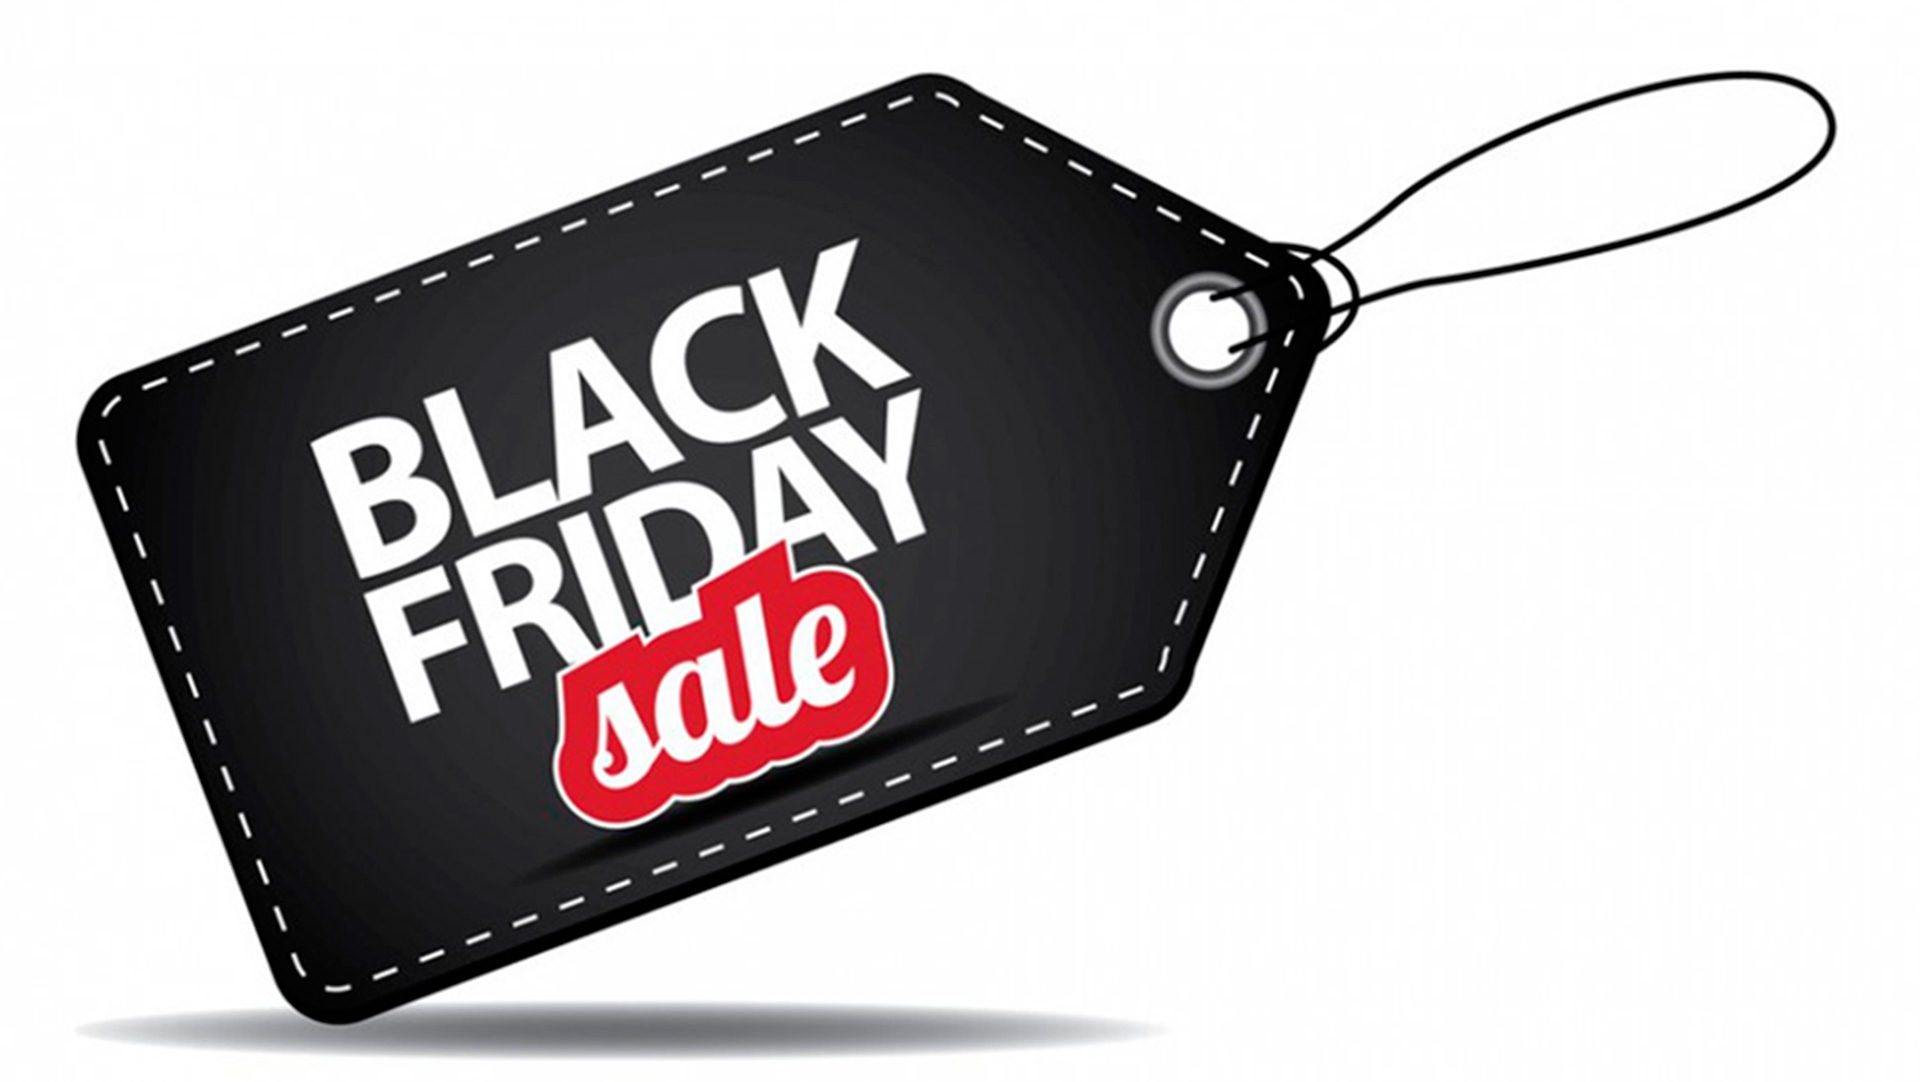 Black Friday, www.arianasoffici.com, cyber monday, deal, bargain, sales, sale, offers, amazon, record